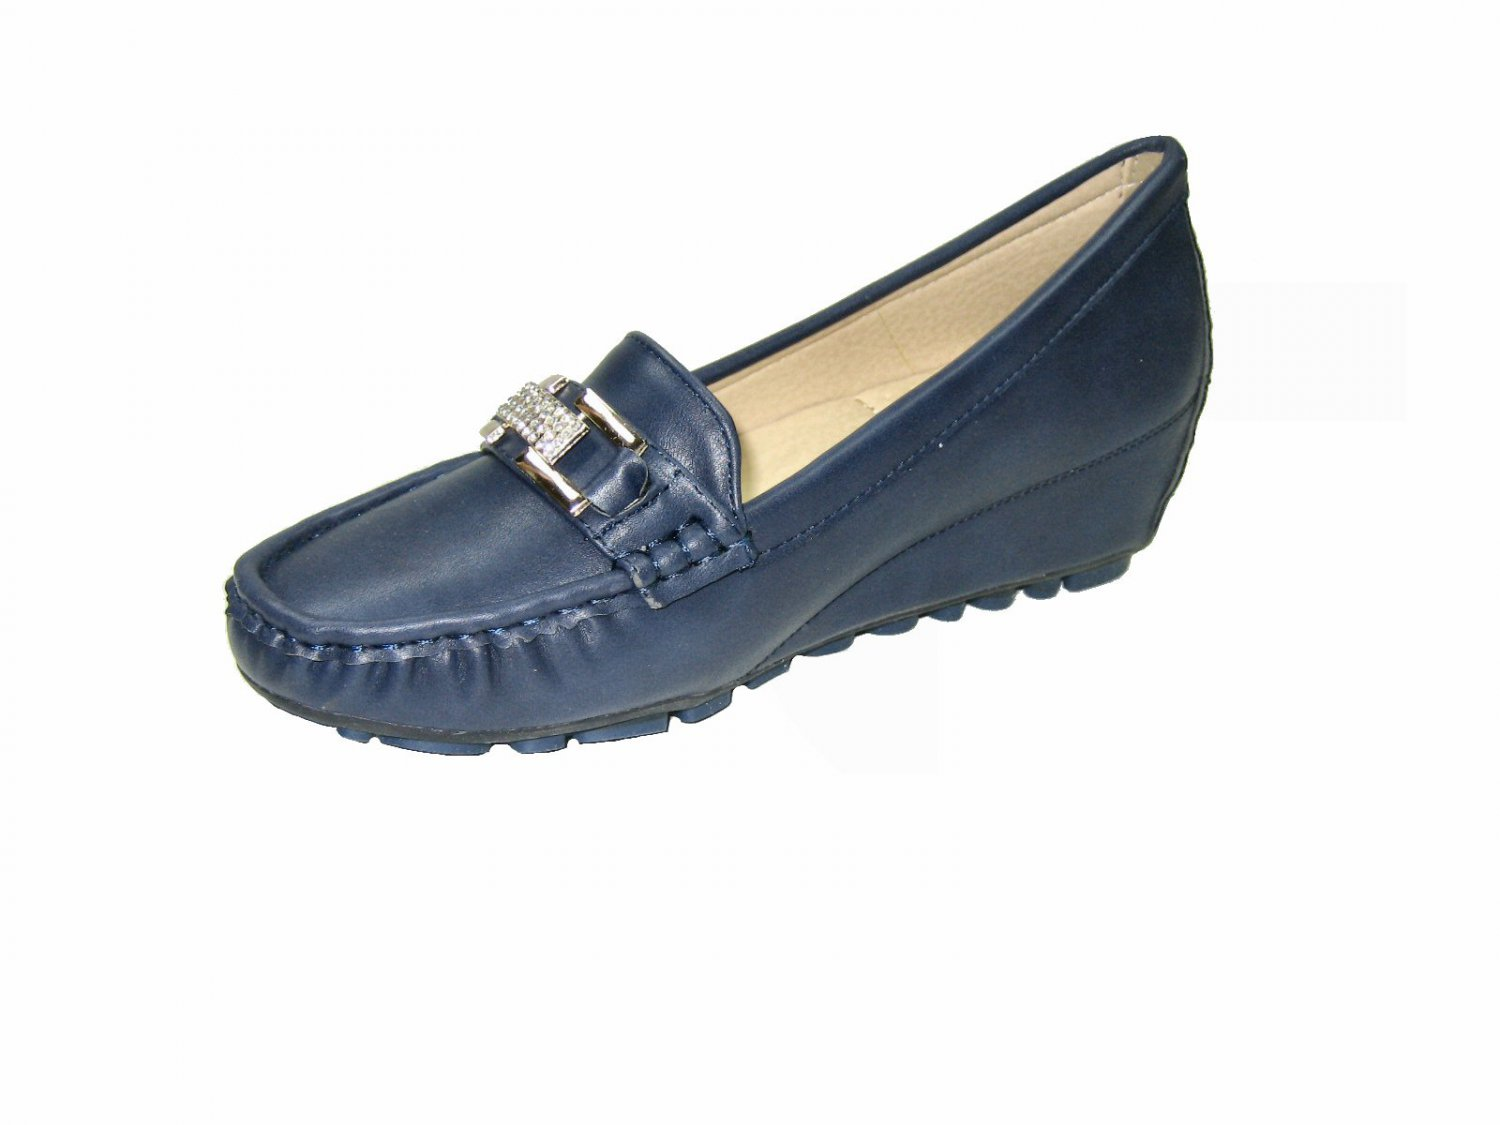 Nature Breeze SouthBay-2p 2 inch wedge heel comfort loafer rhinestone pumps shoe navy size 9